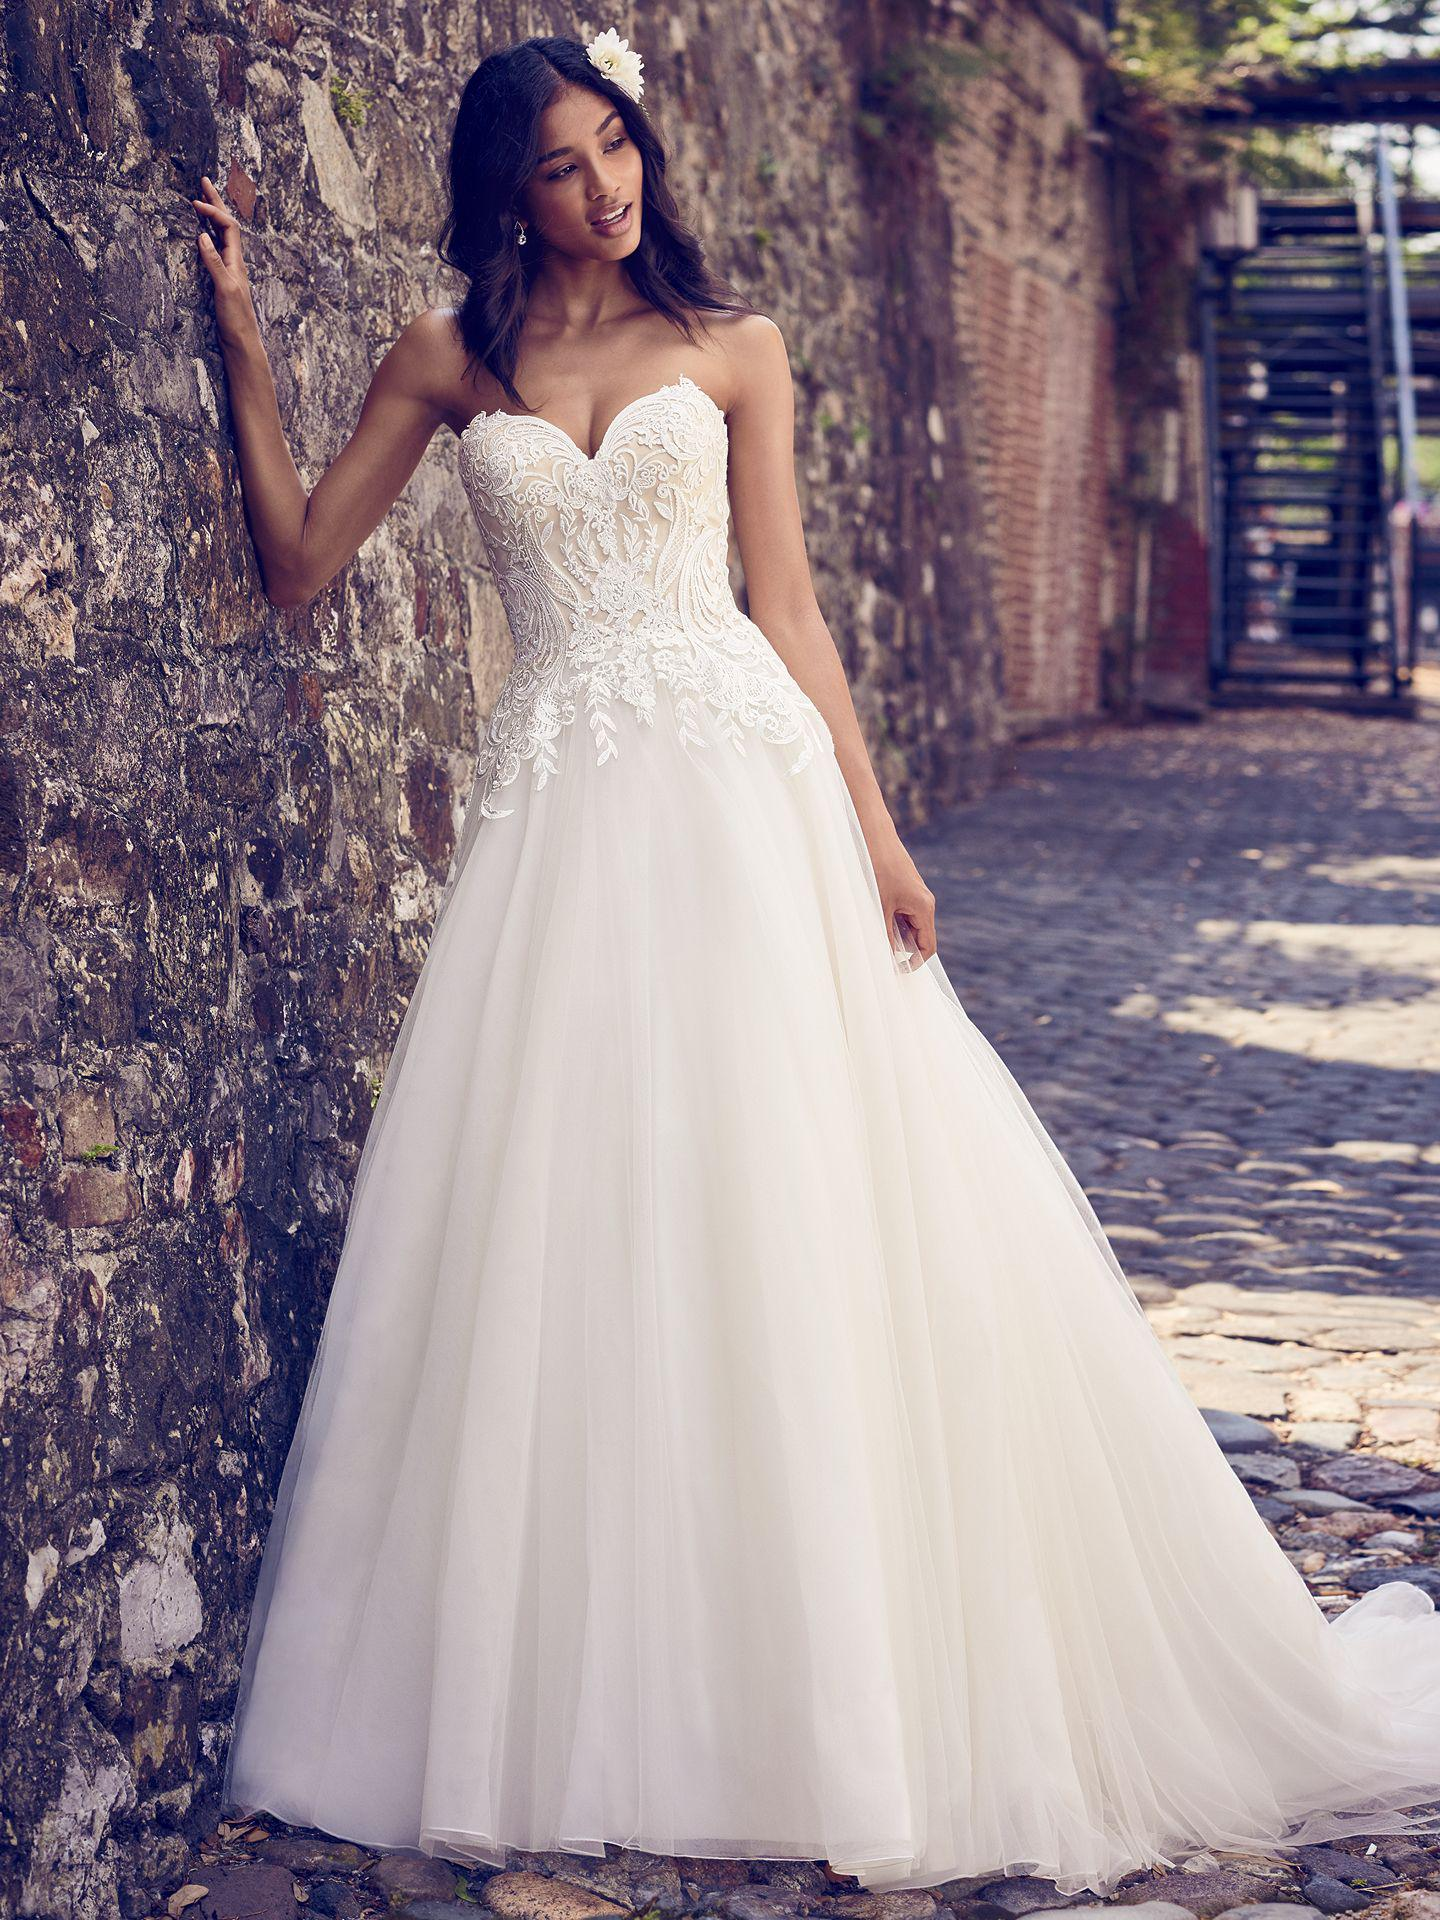 2020/19 Maggie Sottero - RAYNA, All Ivory:40/42